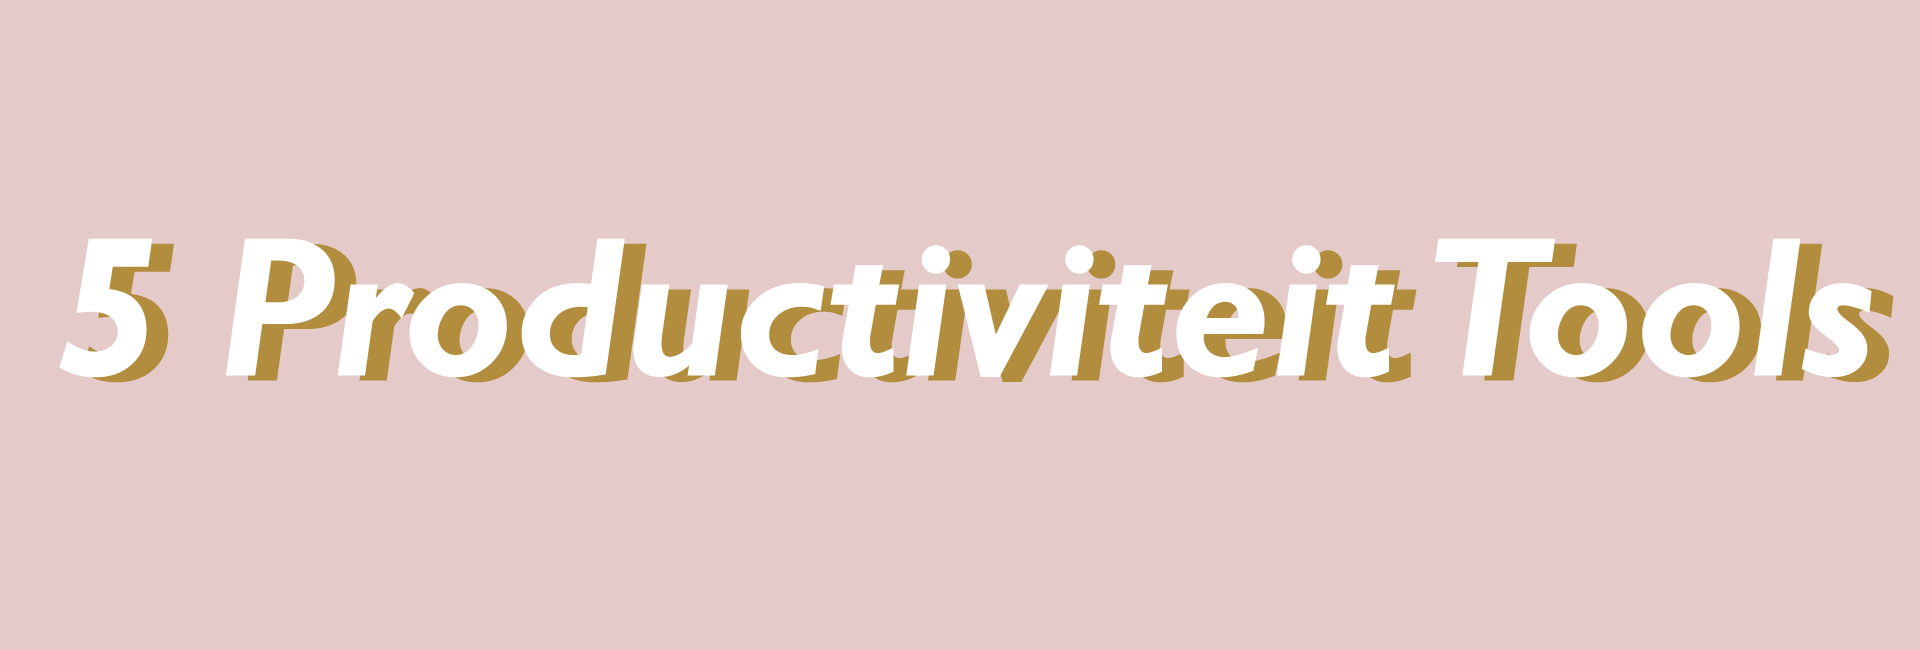 productiviteit, tips, ondernemen, marketing, grafishc ontwerp, 5 productiviteit tips, emmagillgraphics